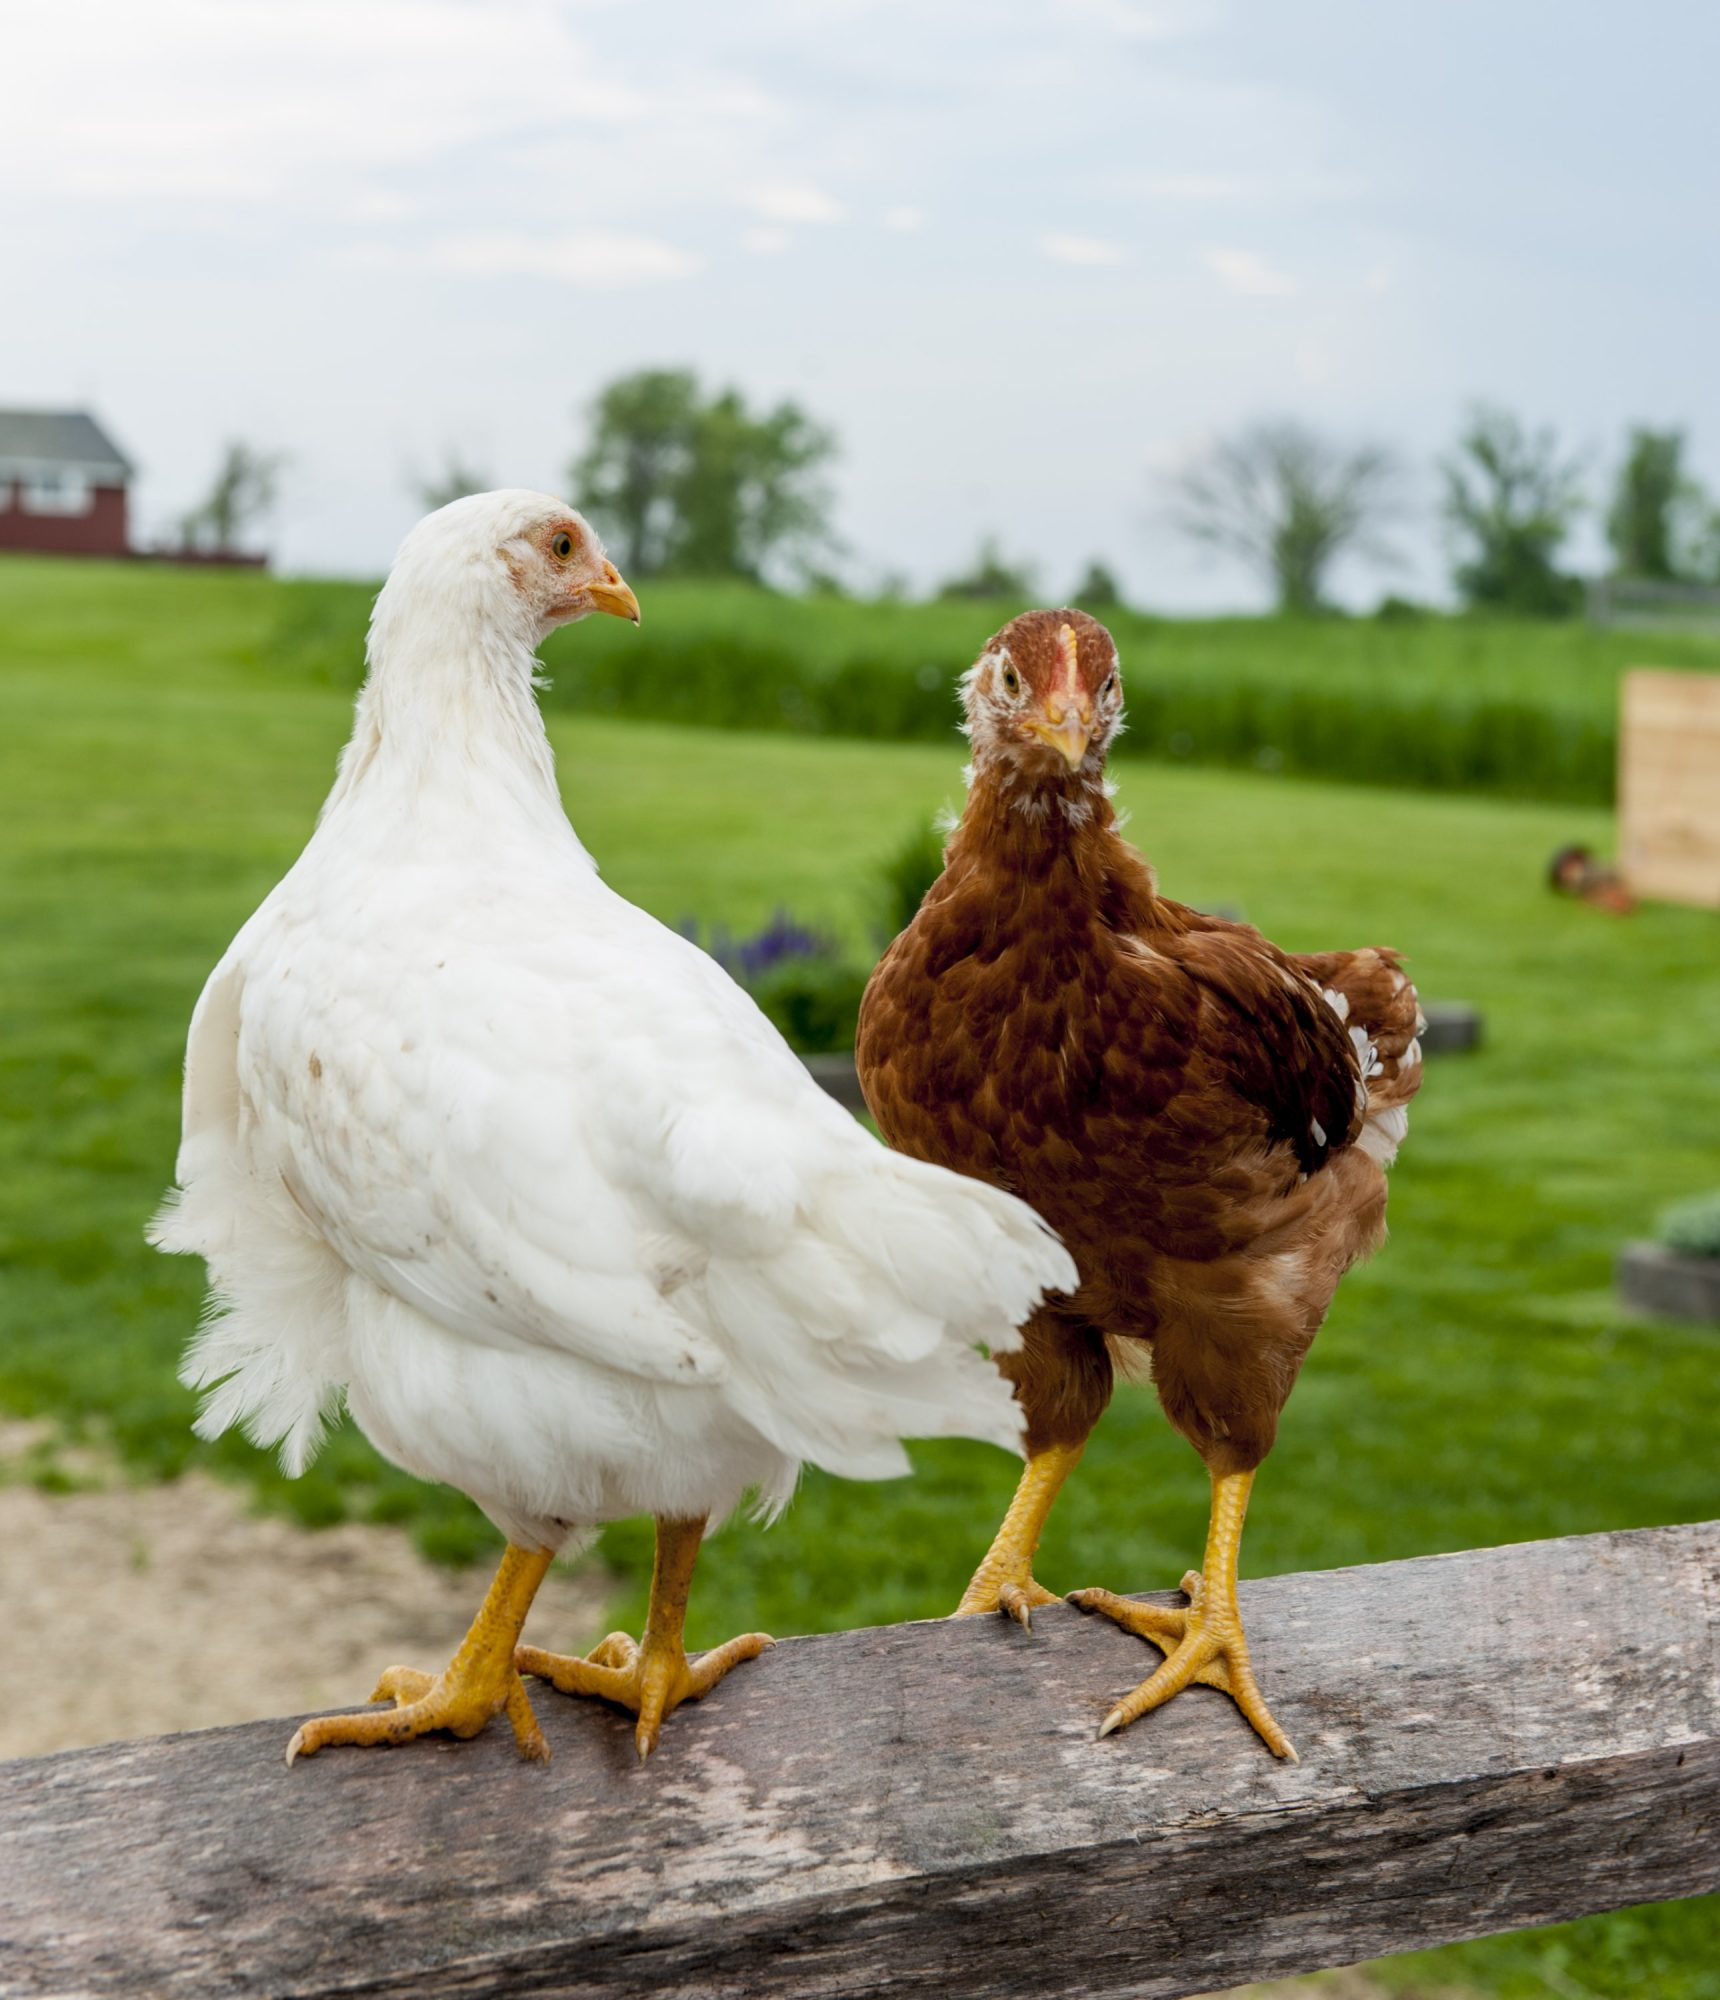 Brown and white chicken